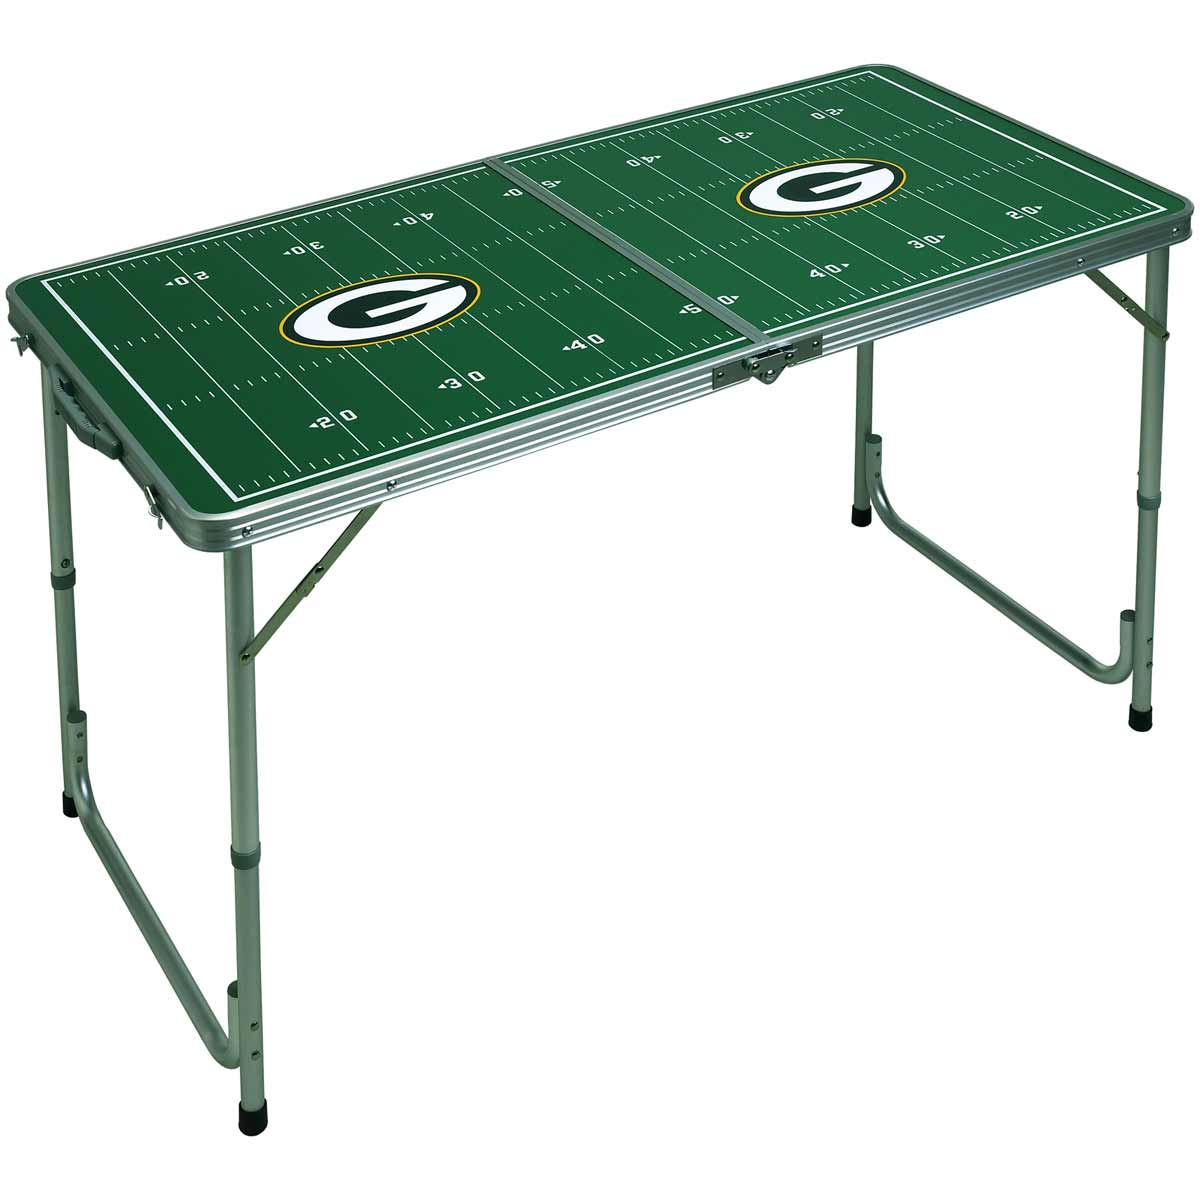 Packers Portable Tailgating Table from Green Bay